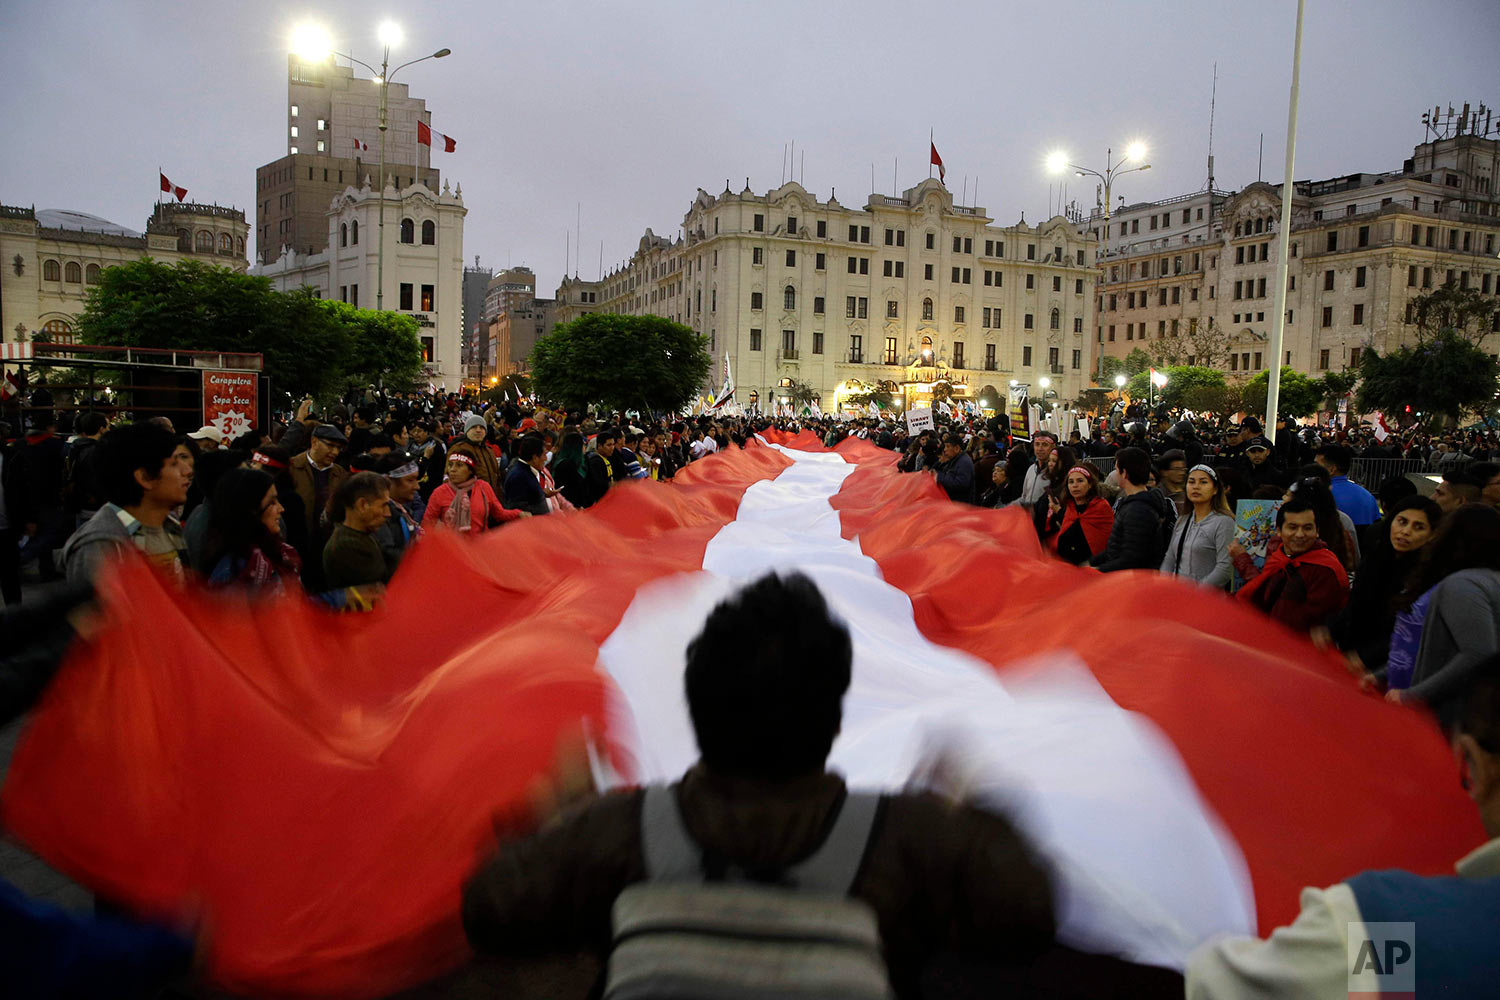 Demonstrators protest corruption at San Martin plaza in Lima, Peru, July 19, 2018. The latest scandal to embroil this South American nation has ensnared some of the country's highest-ranking judges and political officials and comes just four months after then-President Pedro Pablo Kuczynski stepped down in a separate corruption probe. (AP Photo/Martin Mejia)